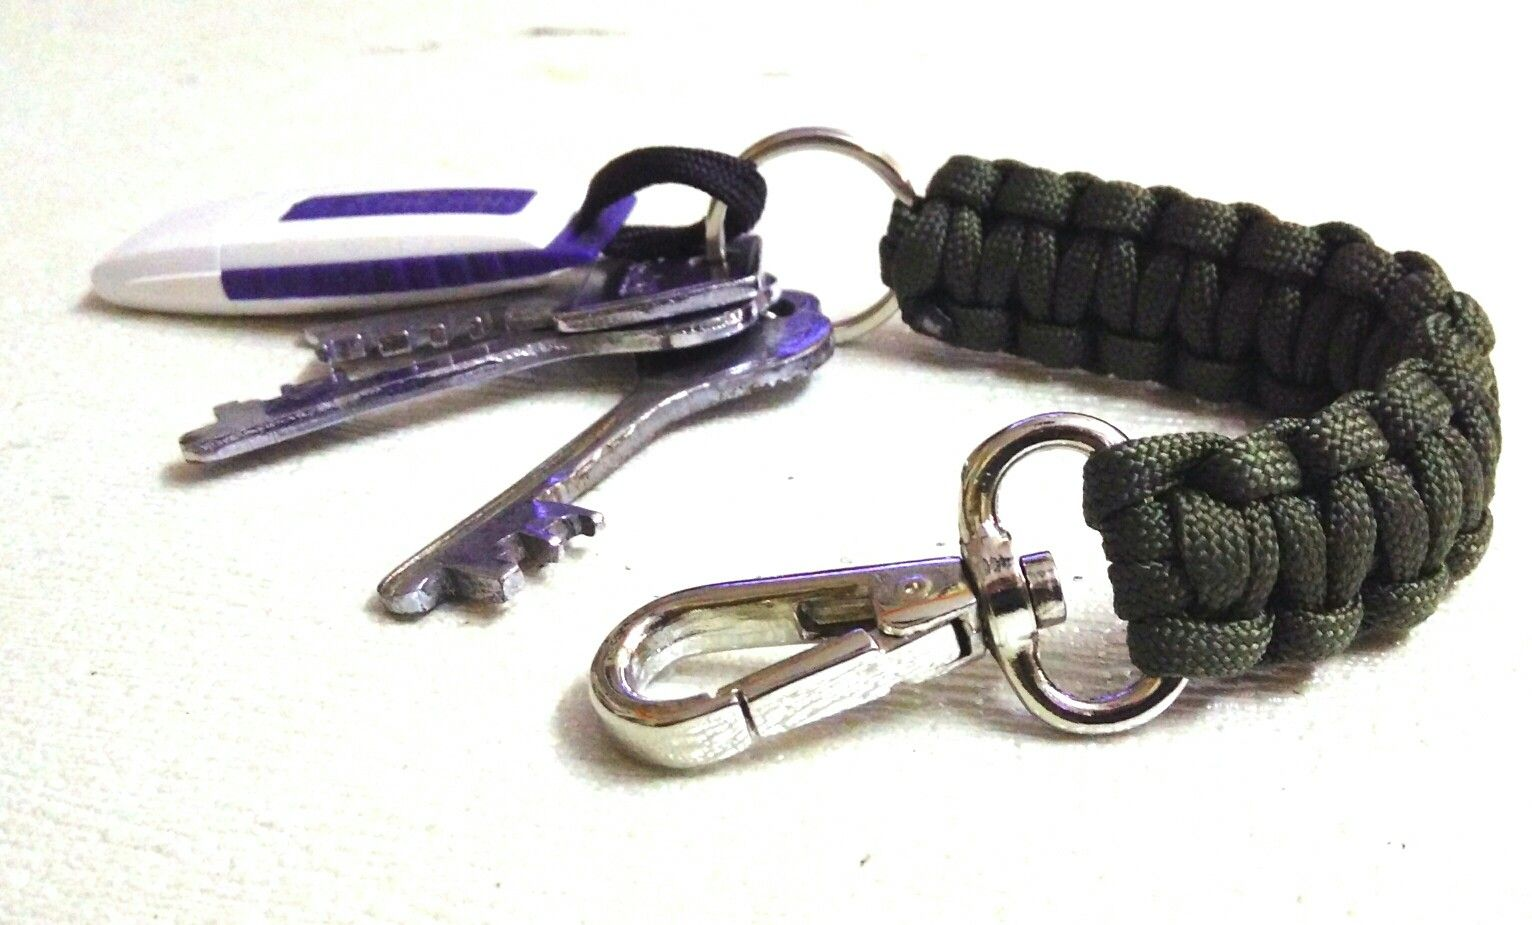 I am Satya from Bangalore, expert to making Paracord products as Keychains, Bracelets, Belts, Monkey Fist, Camera Strap, Watch Strap, etc. Interested people please contact me 7760421448.